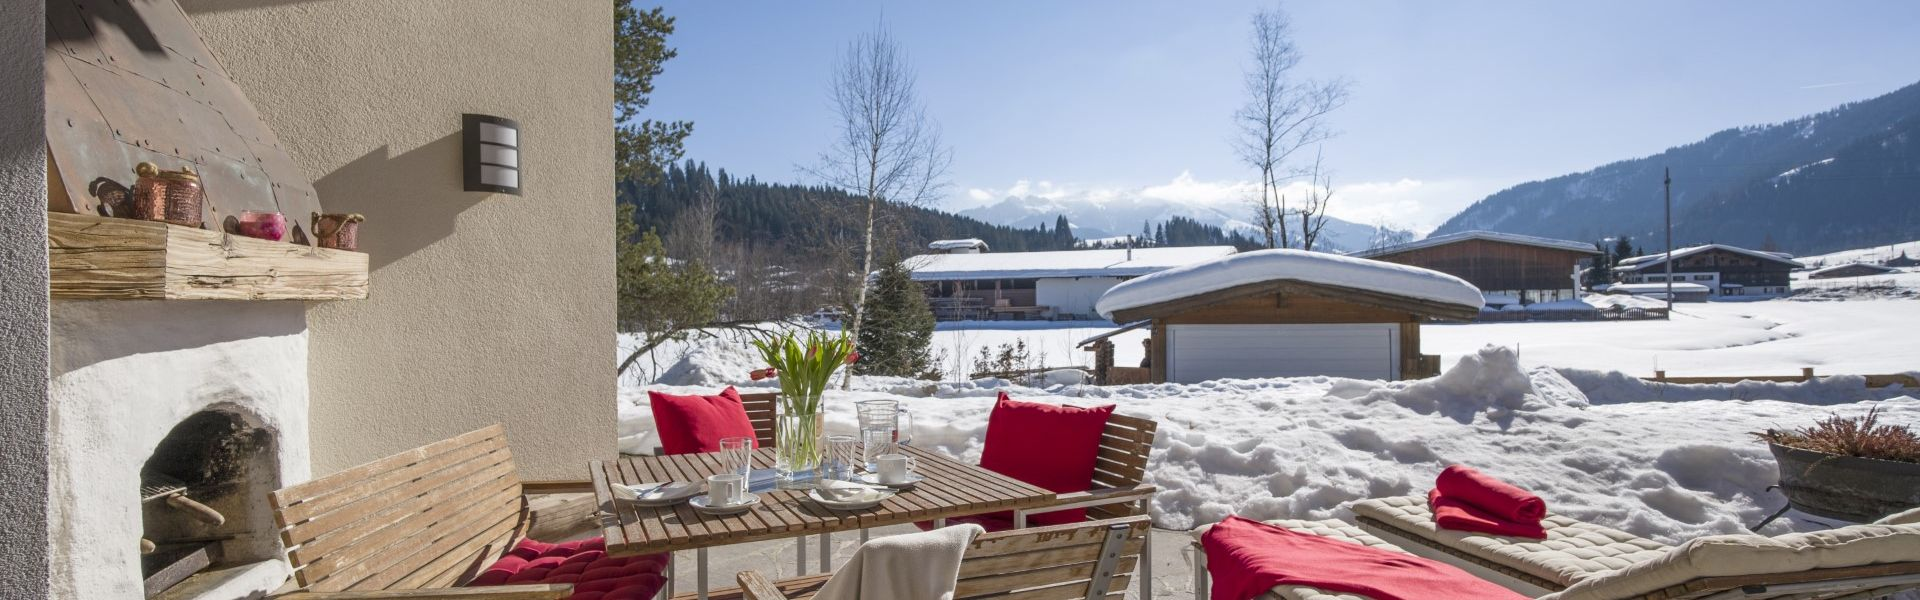 Appartements Skida Raintalweg 4 Reith Bei Kitzbuehel App Wilder Kaiser Terrasse Winter